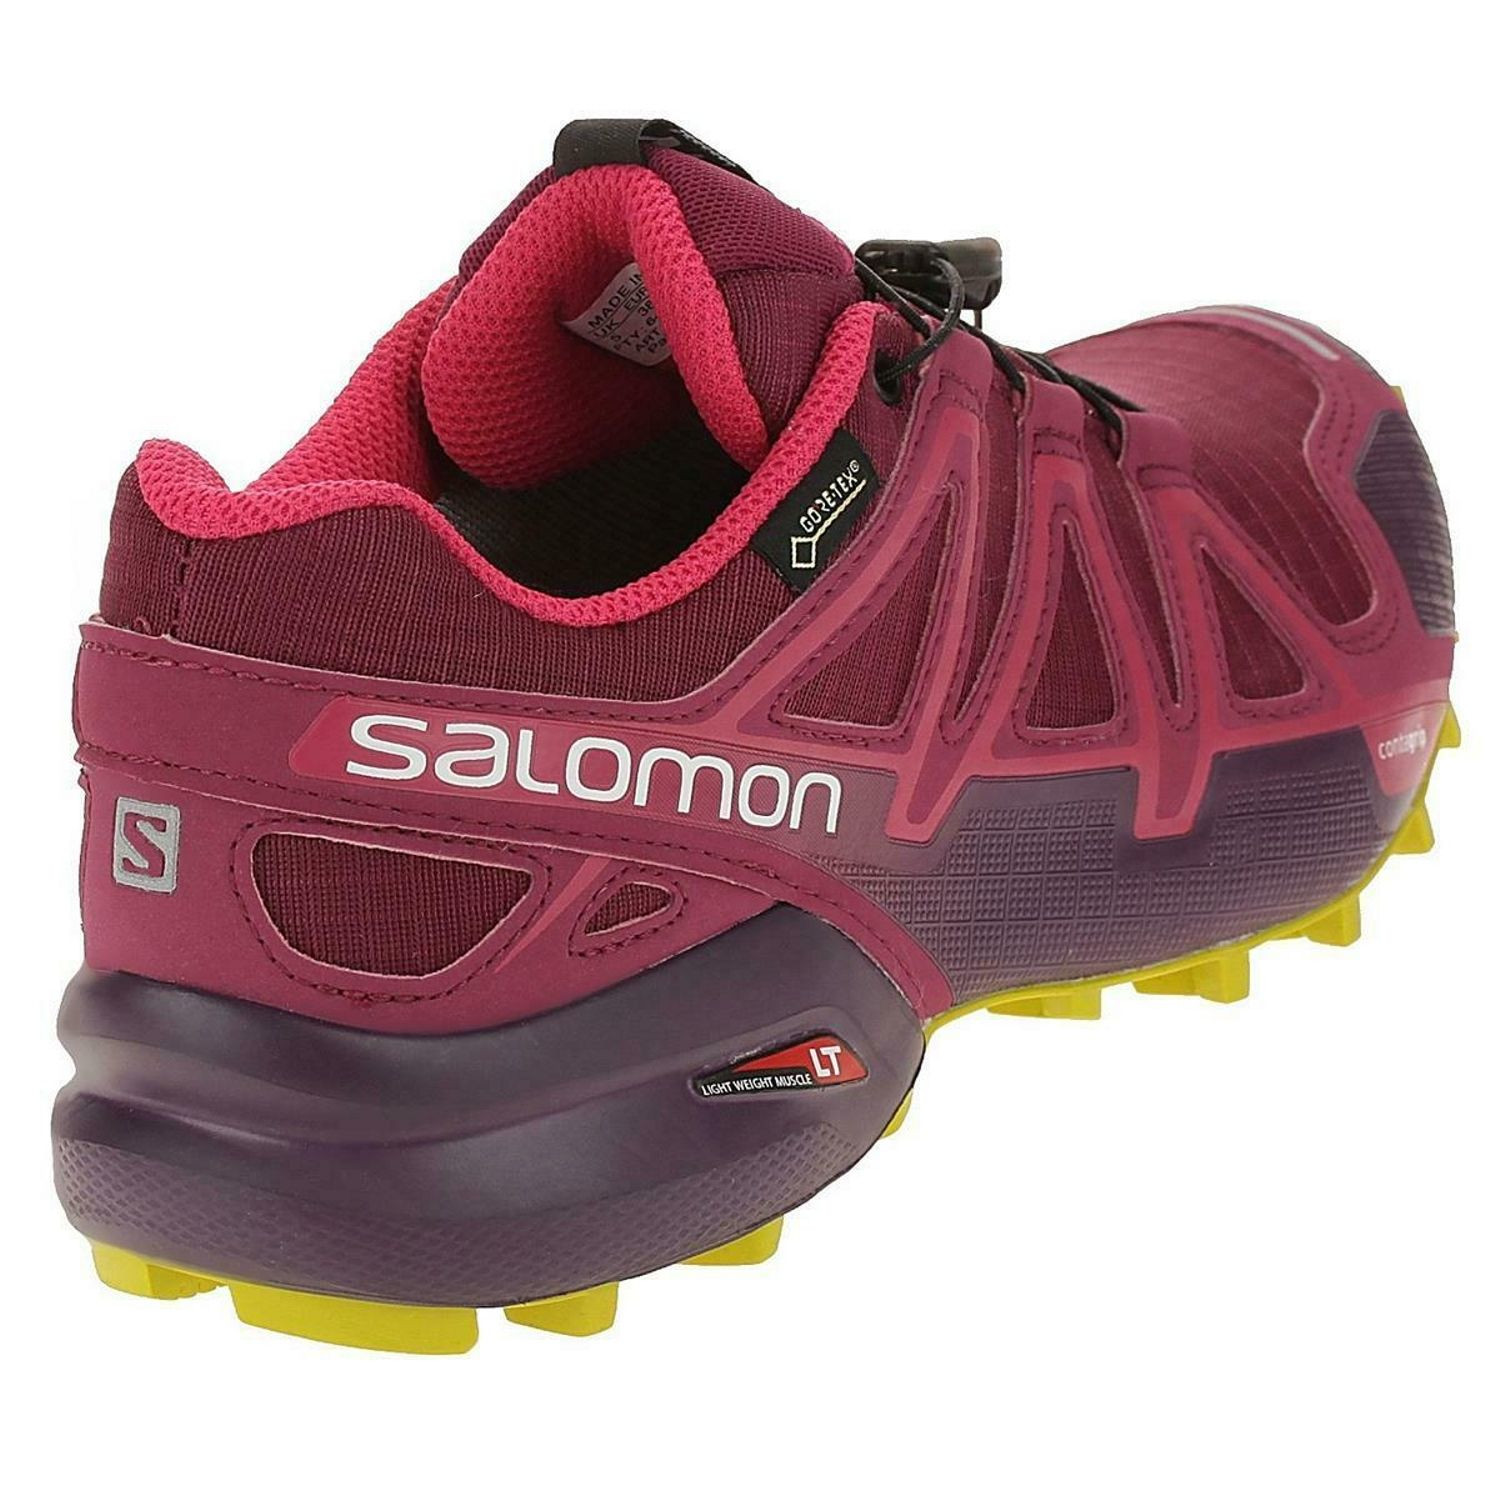 SALOMON Speedcross 4 GTX W Red Červená uk 4